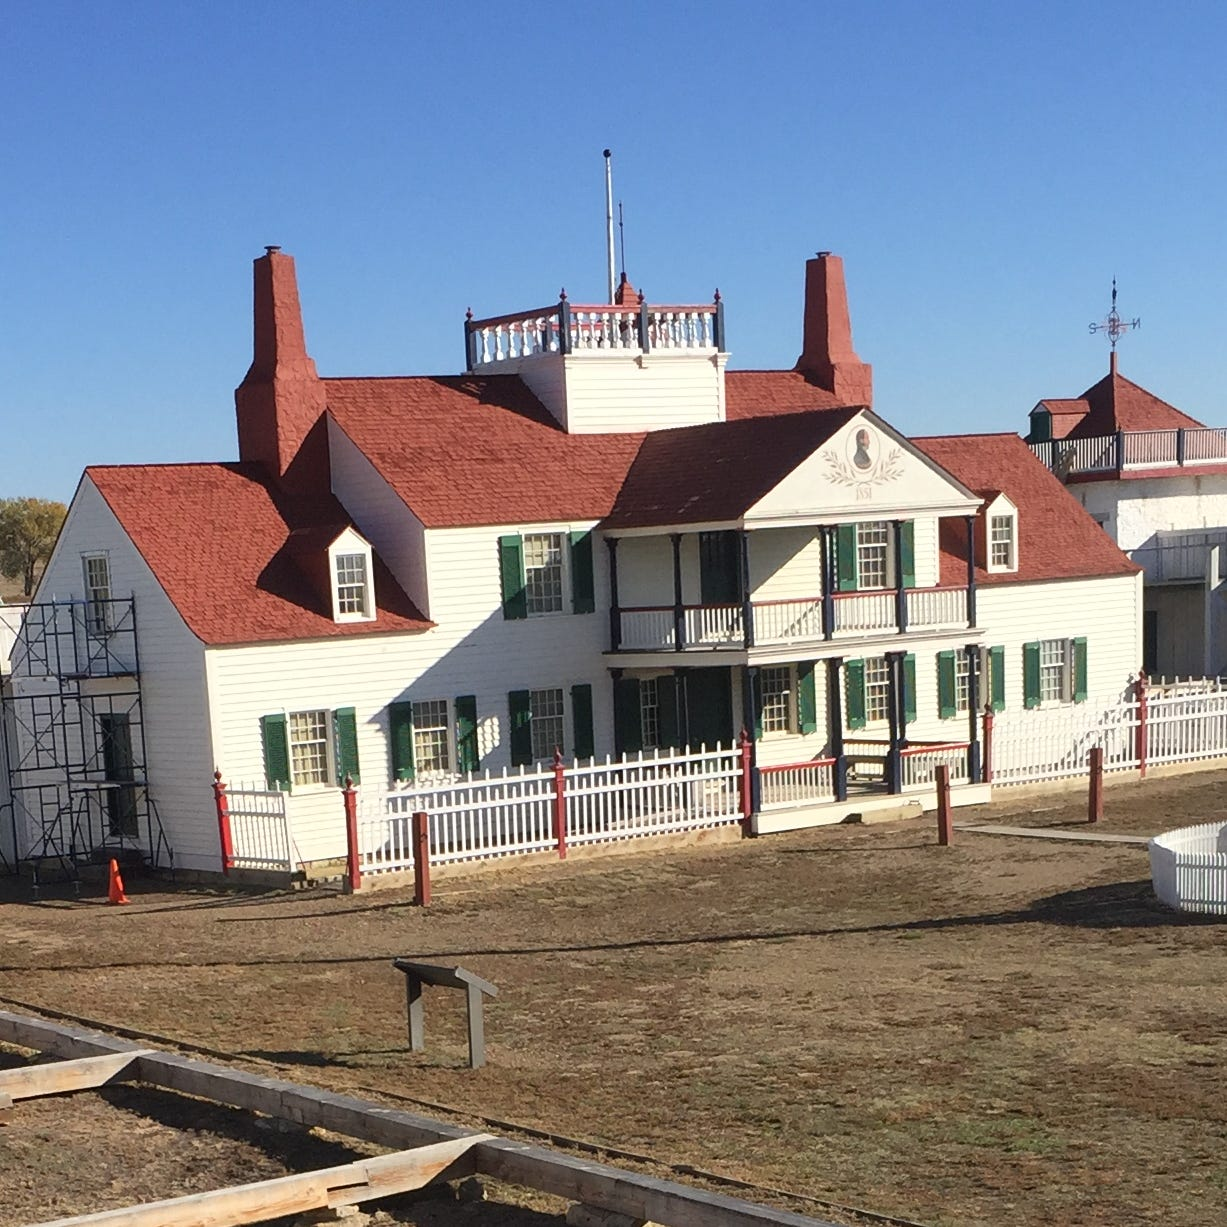 The reconstructed Fort Union is on the site of the original structure and includes a Bourgeois House, which was rebuilt on some of its foundation stones. The wooden framing in the foreground marks where other buildings would have stood.